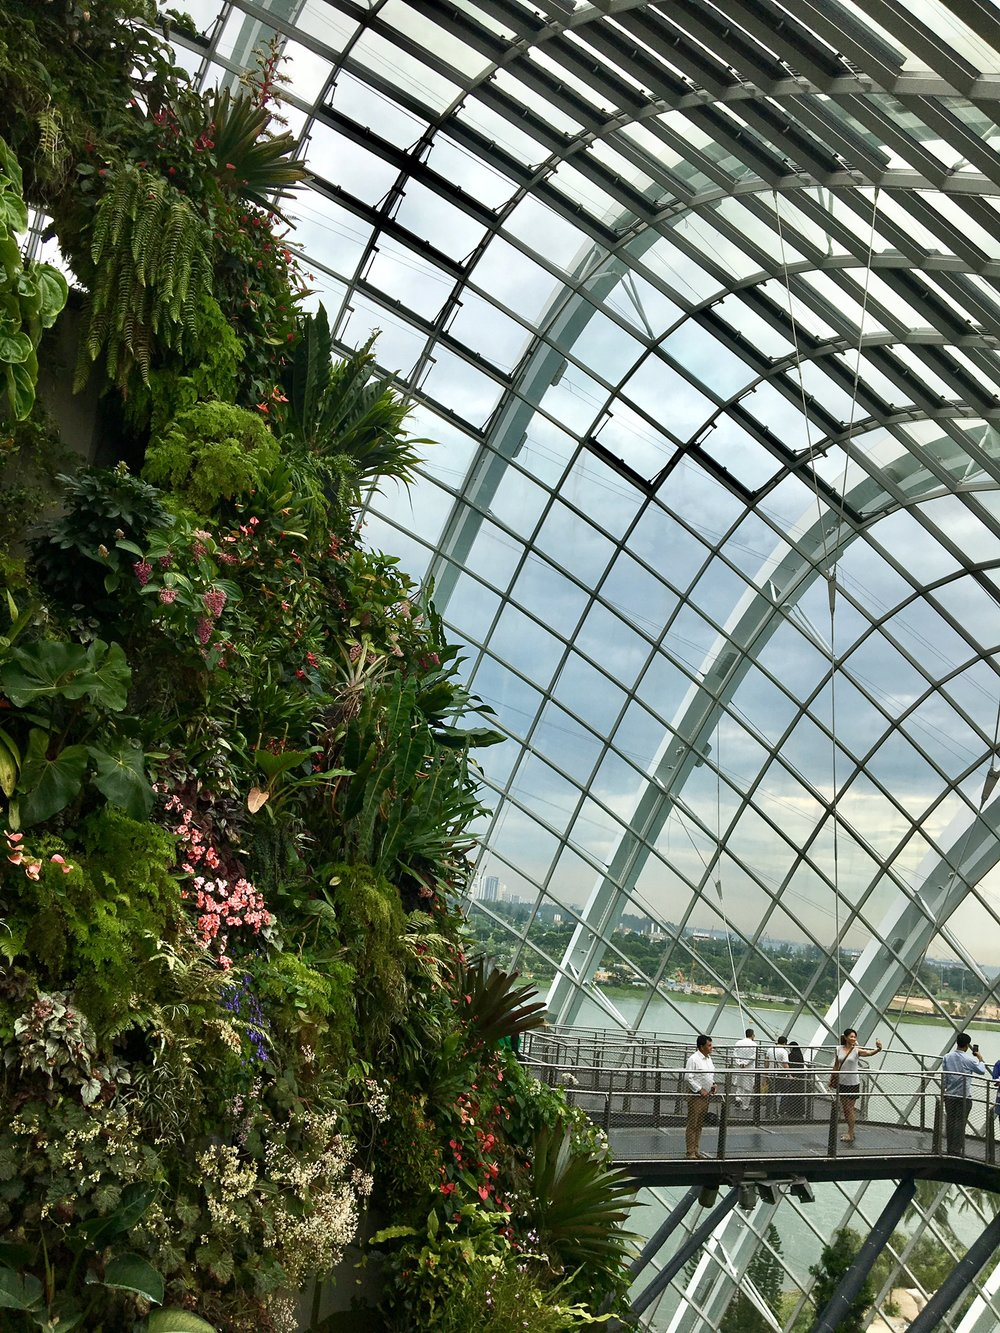 It's hard to get a picture which shows the huge expanse of the indoor rainforest canopy with the backdrop of the Singapore Skyscrapers.